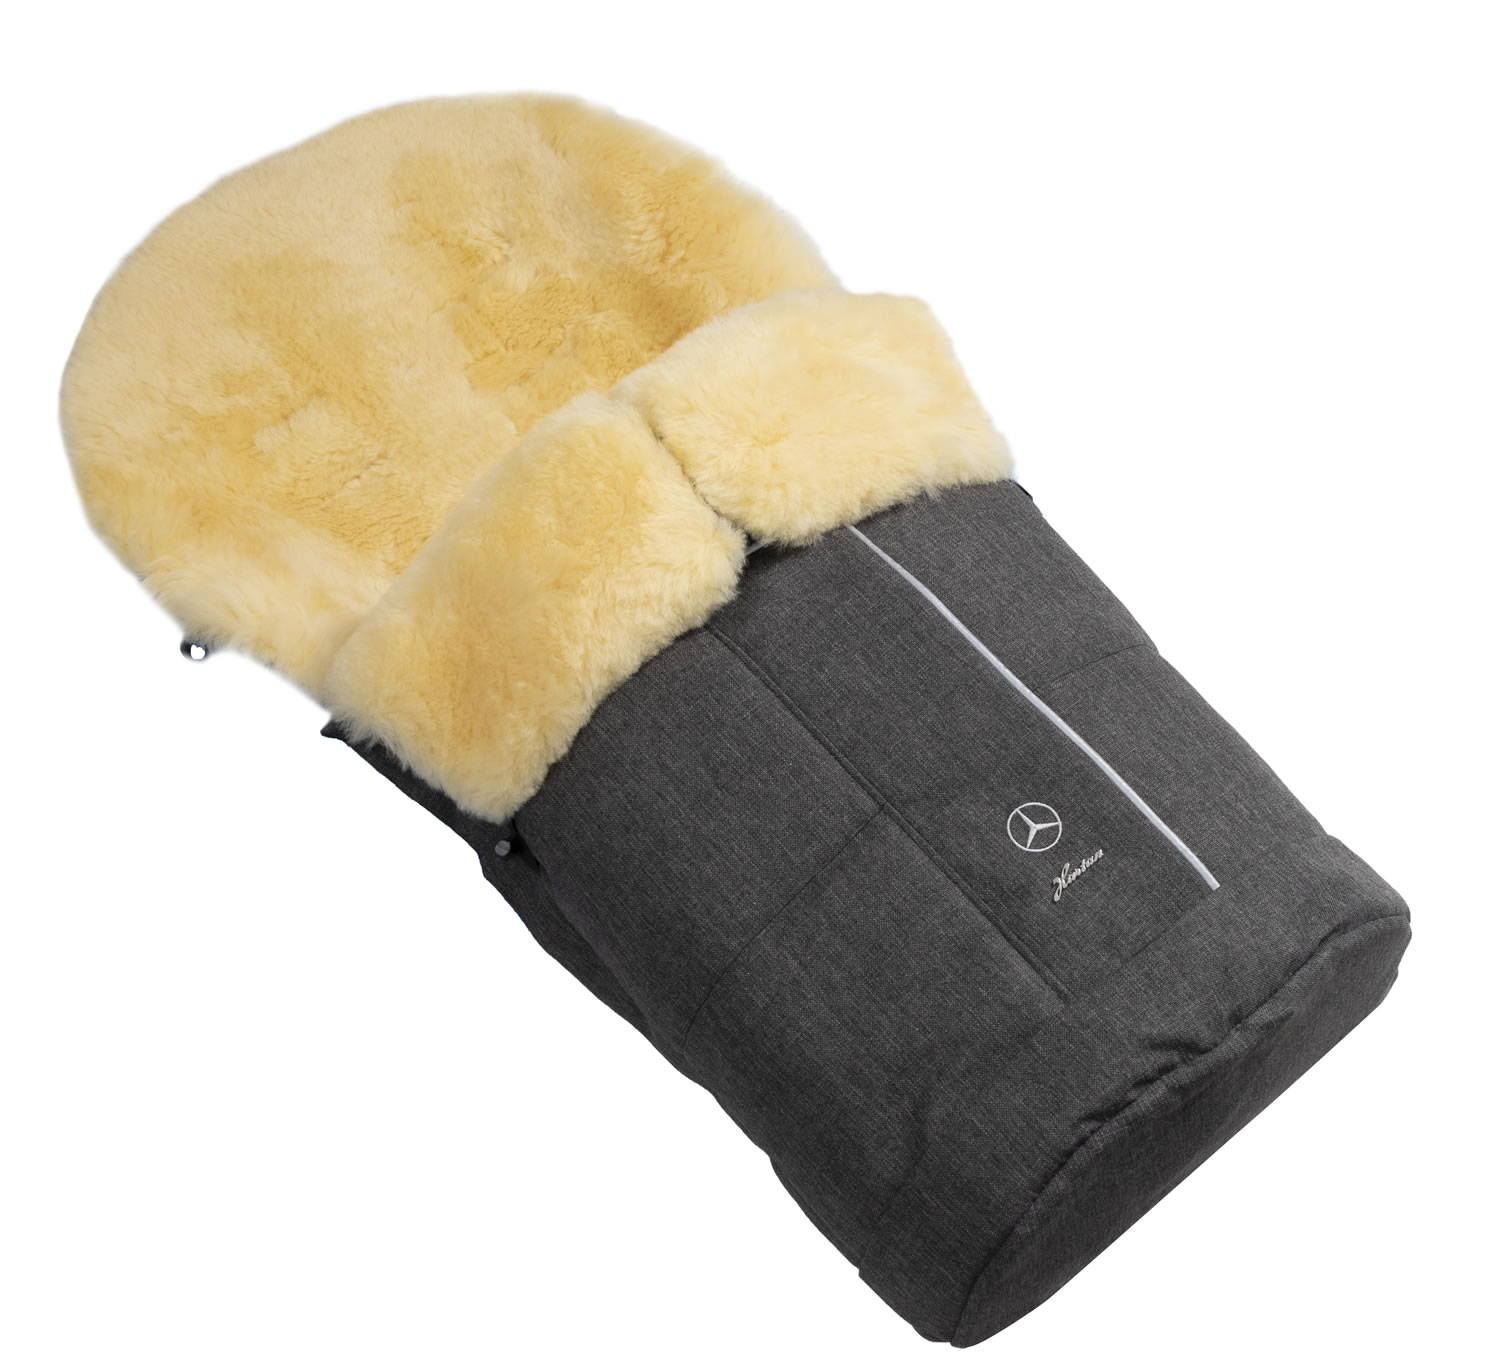 Hartan Mercedes-Benz lambskin footmuff in Deep Sea